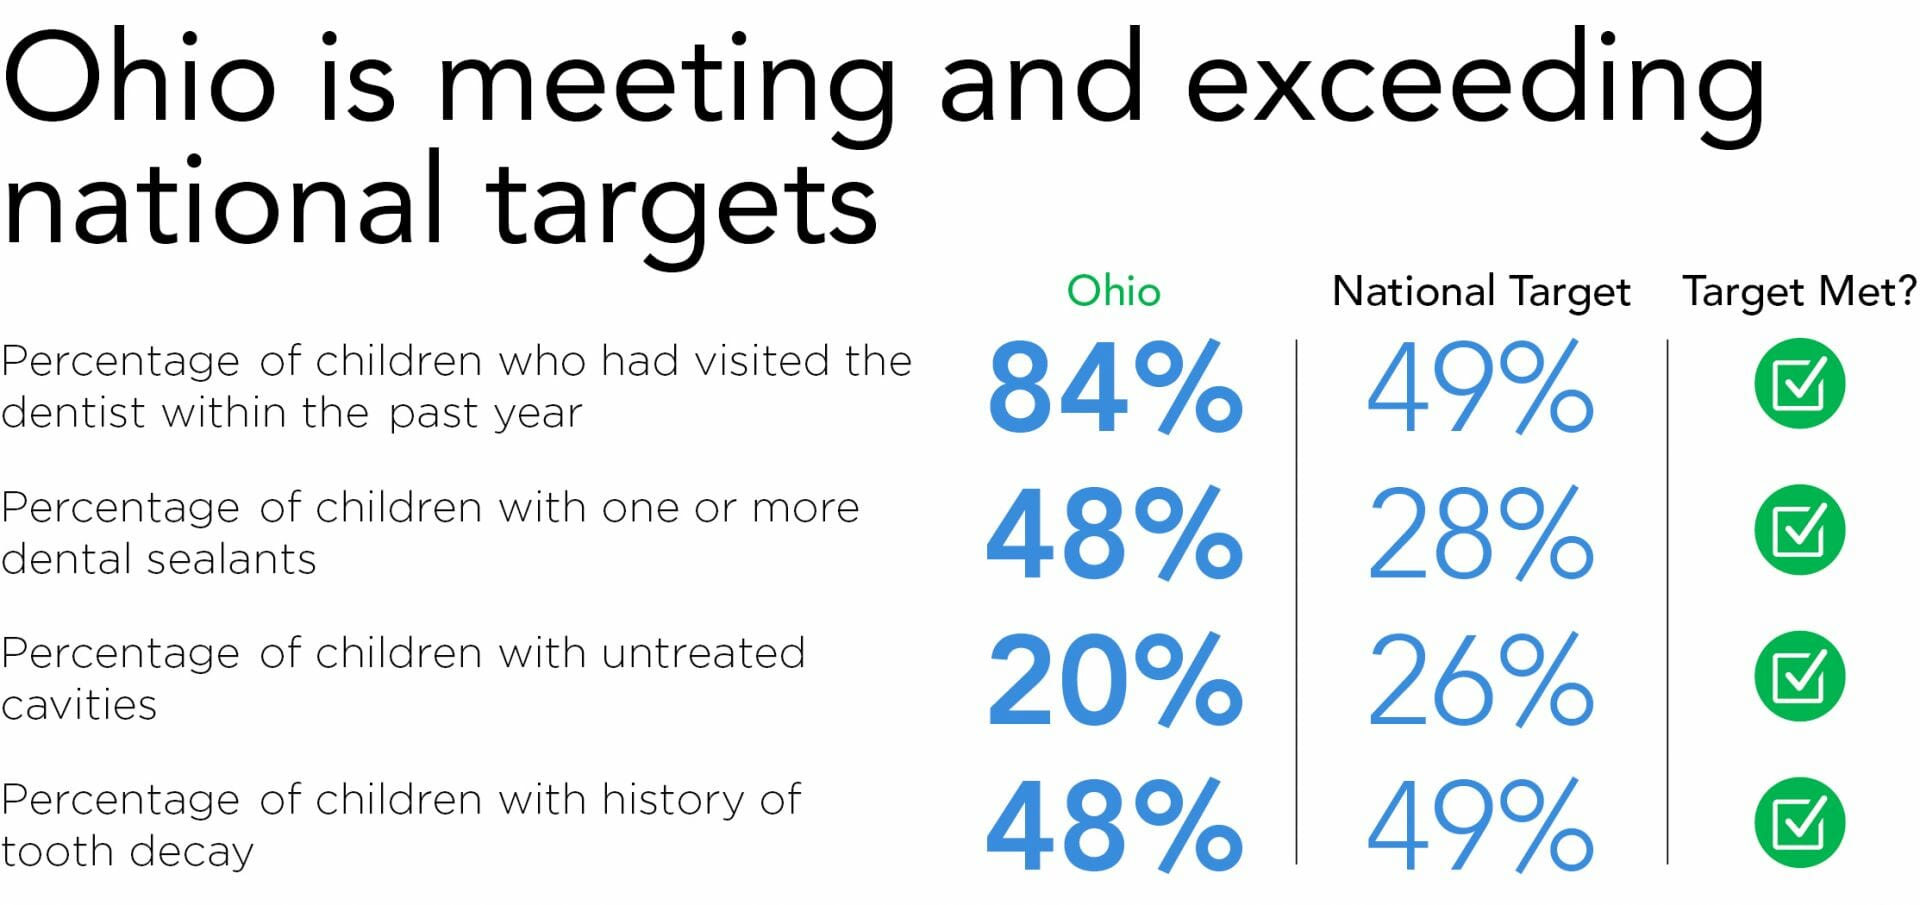 Ohio is meeting and exceeding national targets